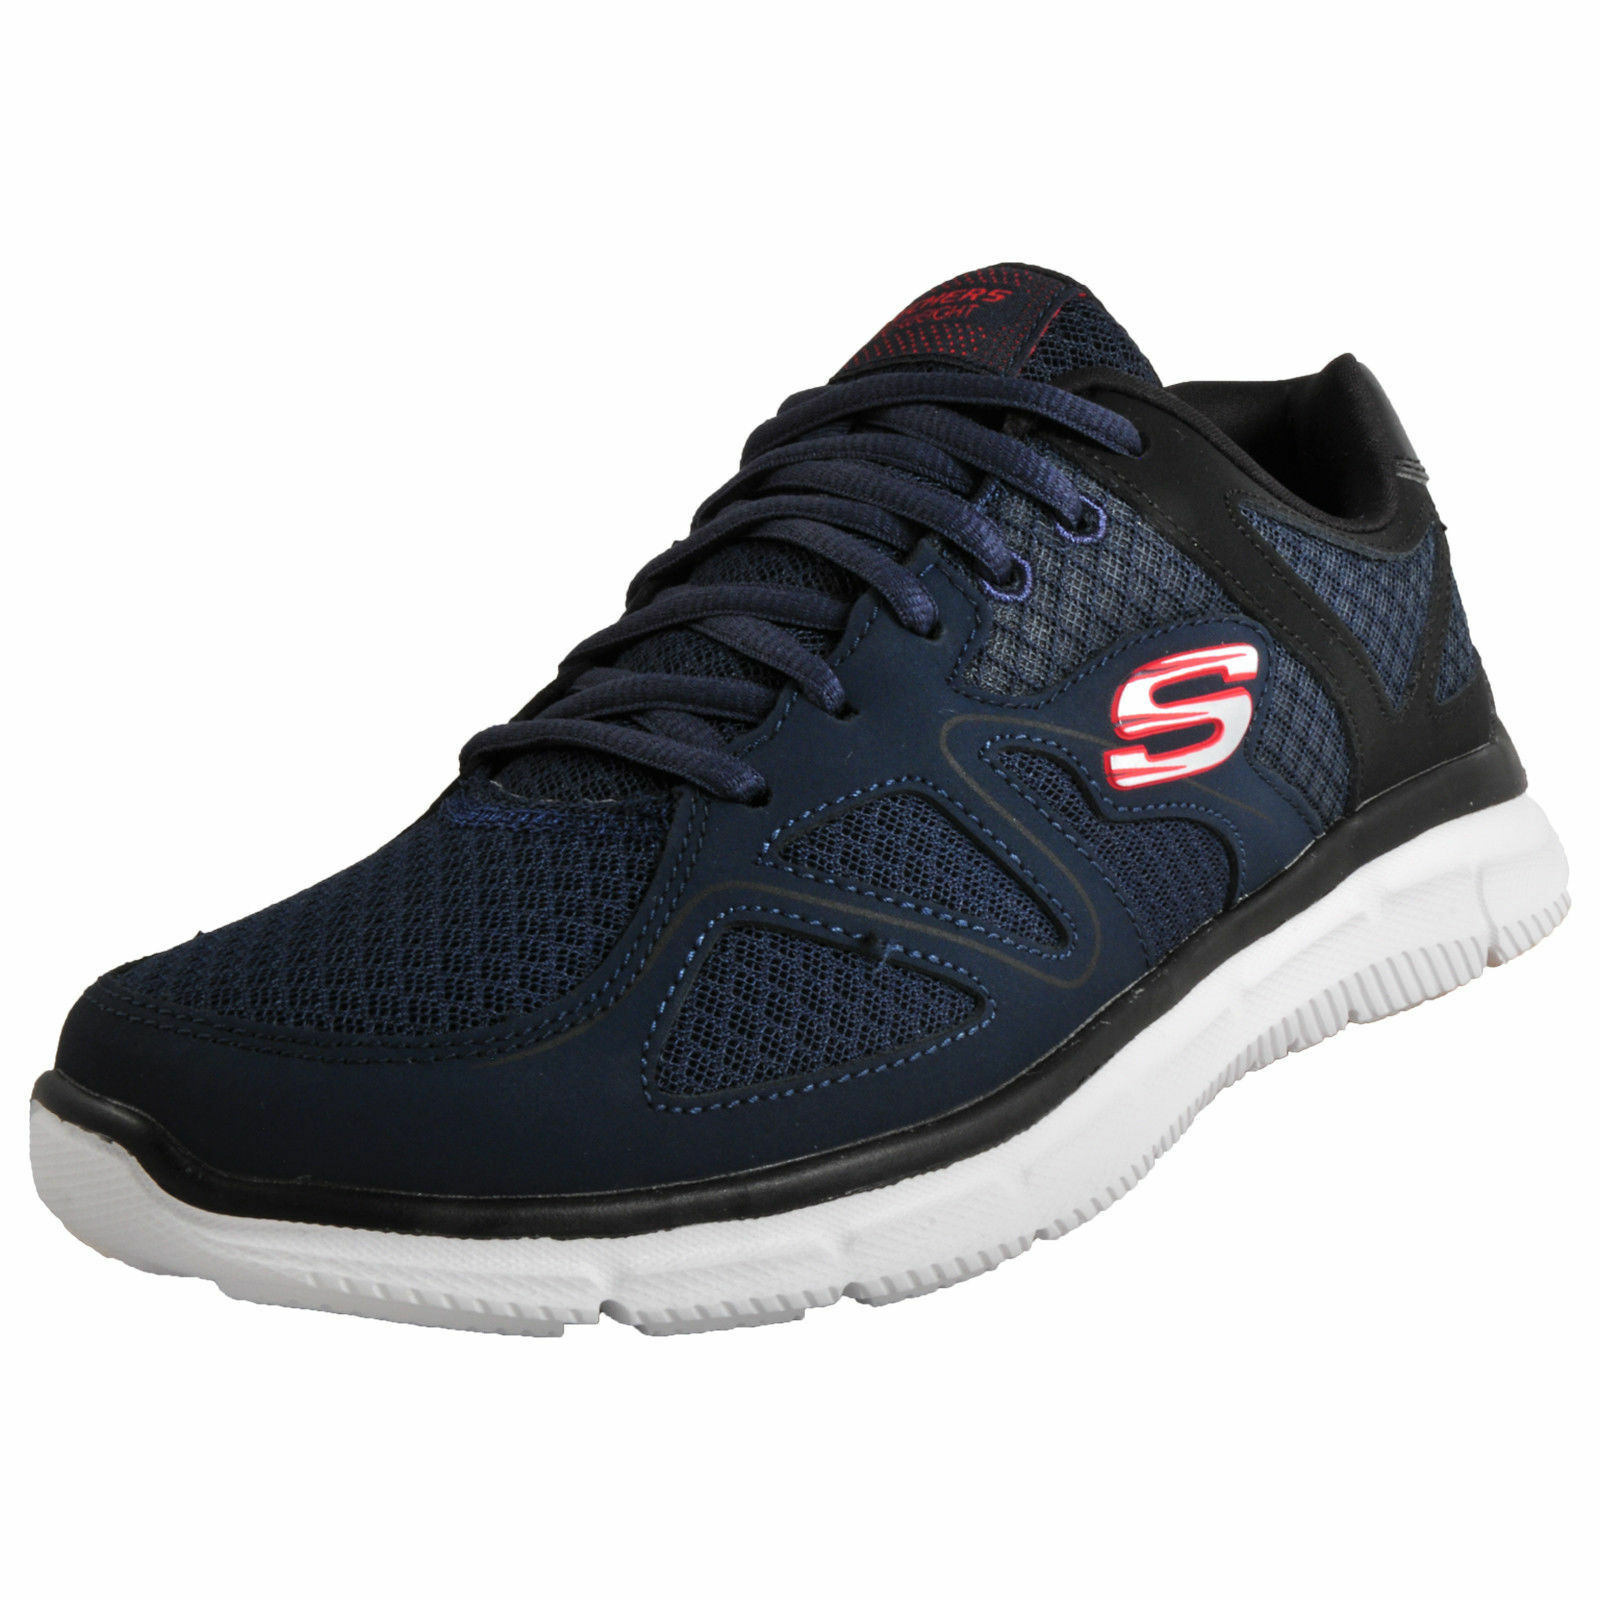 58350 Foam Men Skechers Verse Flash Point Memory Foam 58350 Sport Athletic Shoes Sneakers e896b0